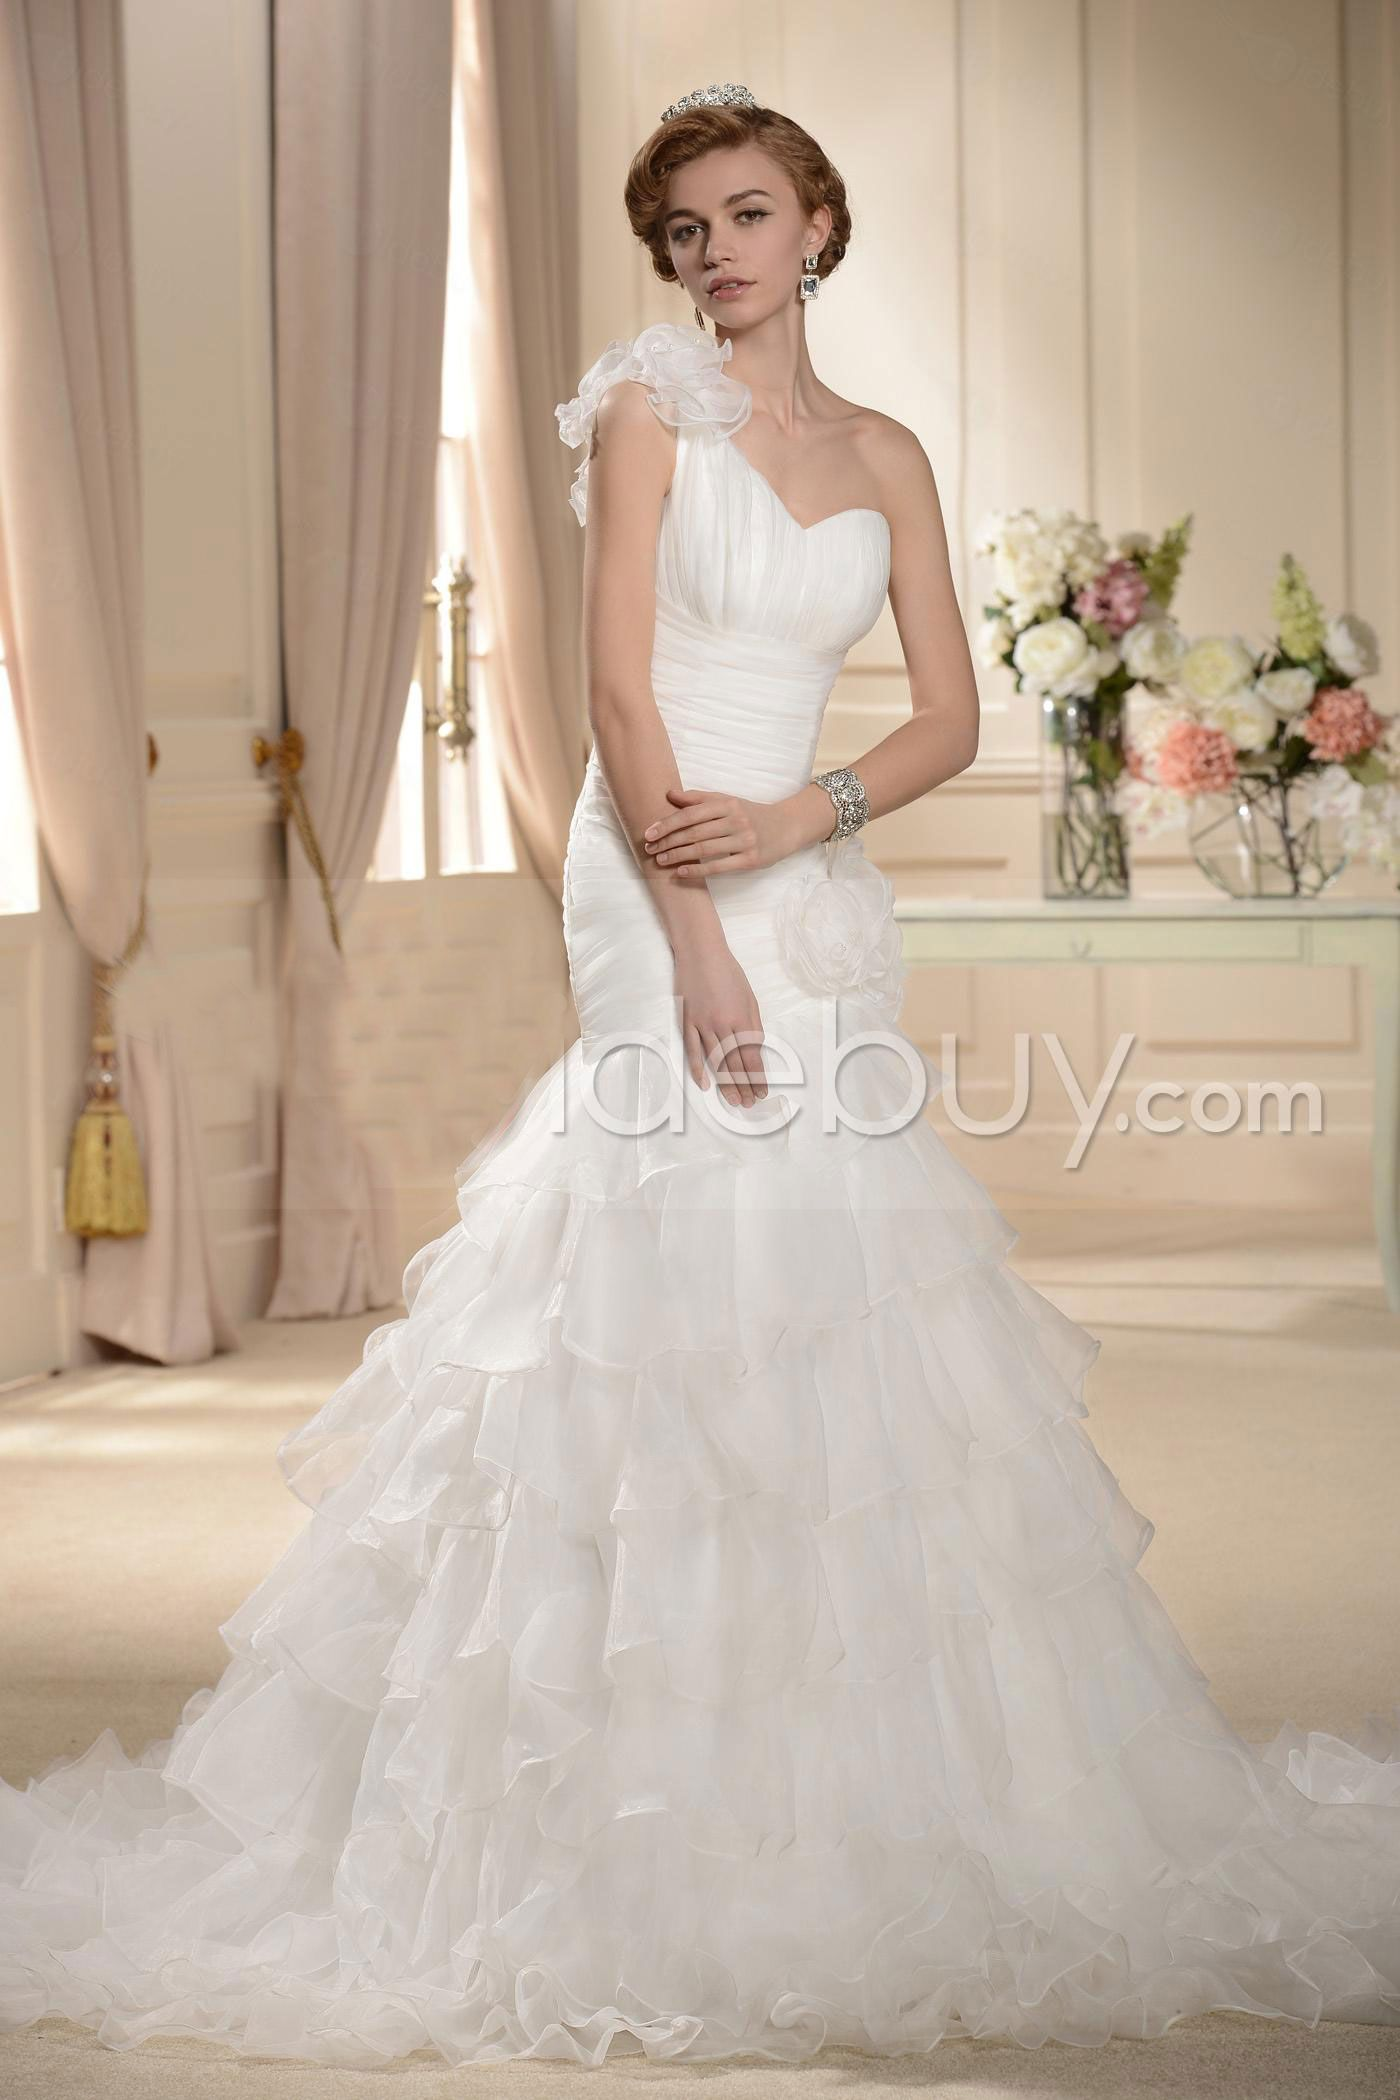 Mermaid ruffle wedding dress  Gorgeous TrumpetMermaid Oneshoulder Sweetheart Ruffling Wedding